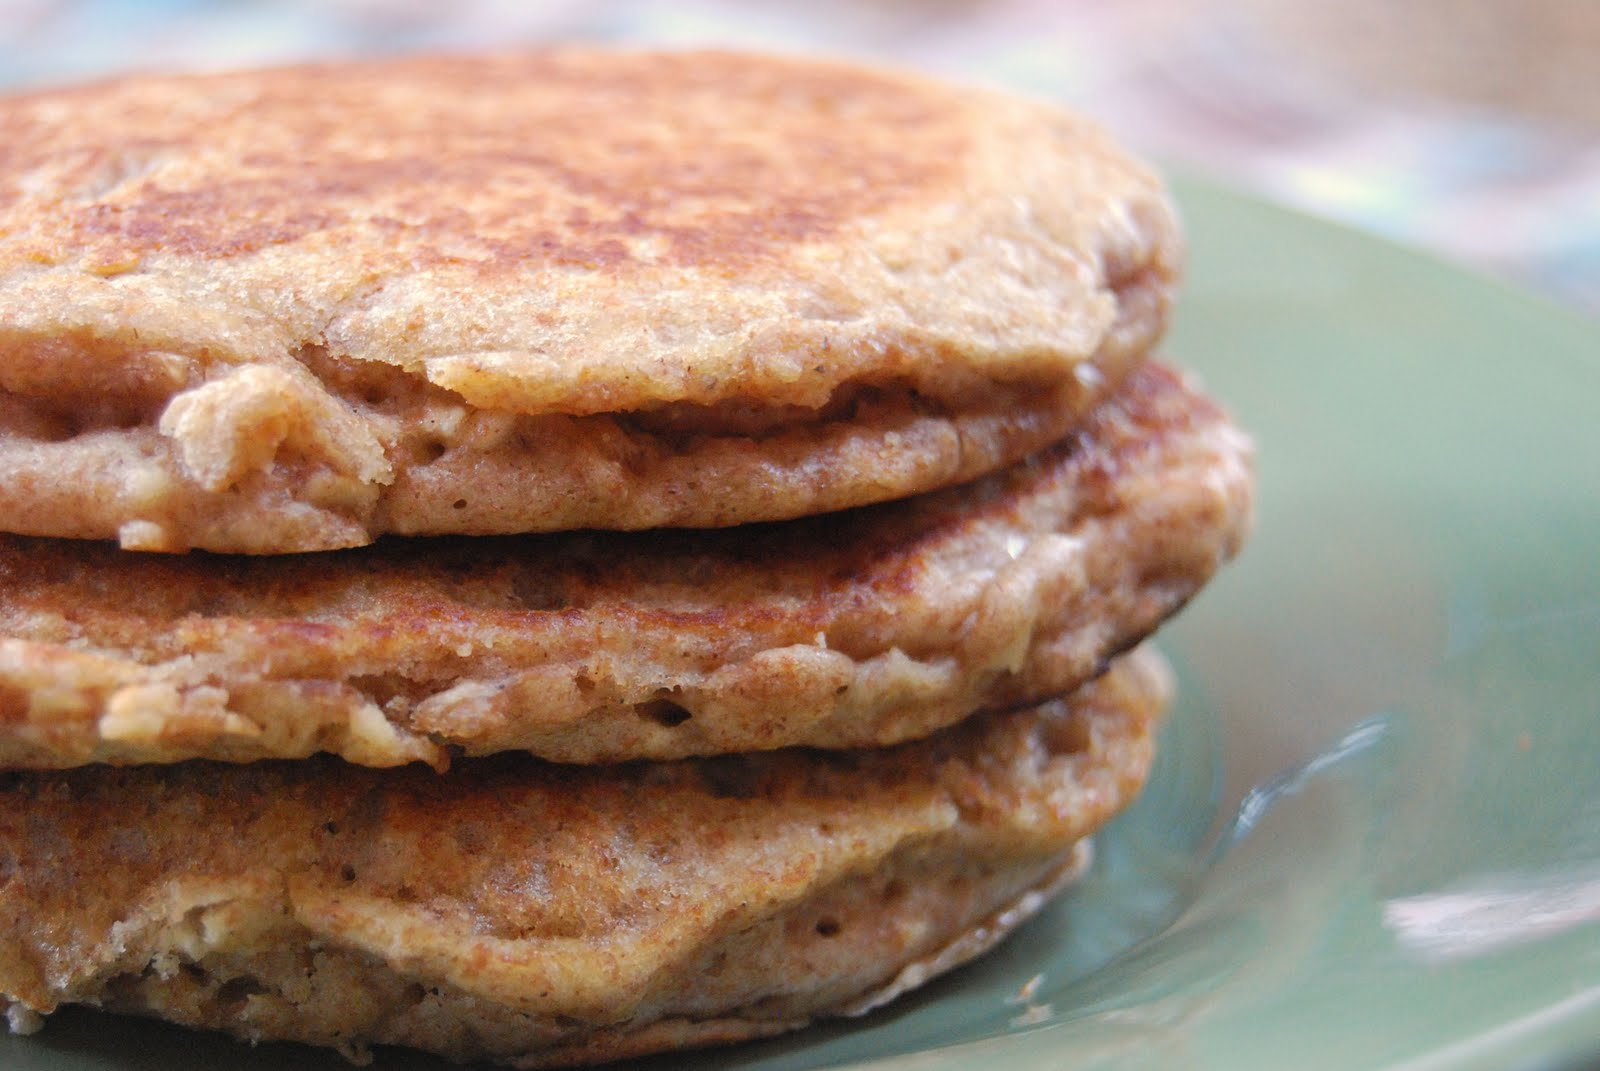 ... pancakes because blueberry oat pancakes recipe whole wheat oat